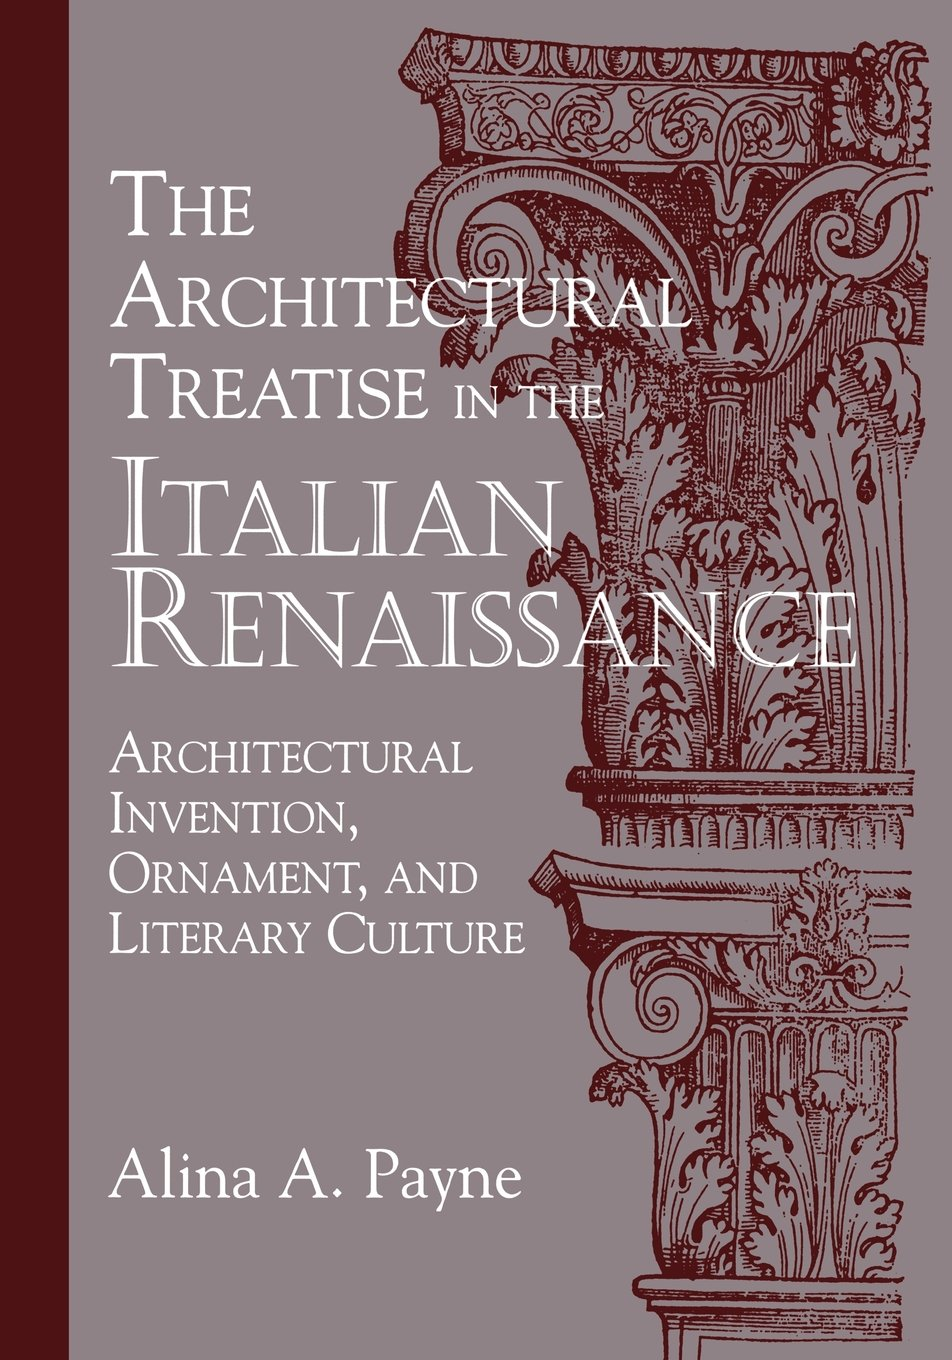 Download The Architectural Treatise in the Italian Renaissance: Architectural Invention, Ornament and Literary Culture ePub fb2 book